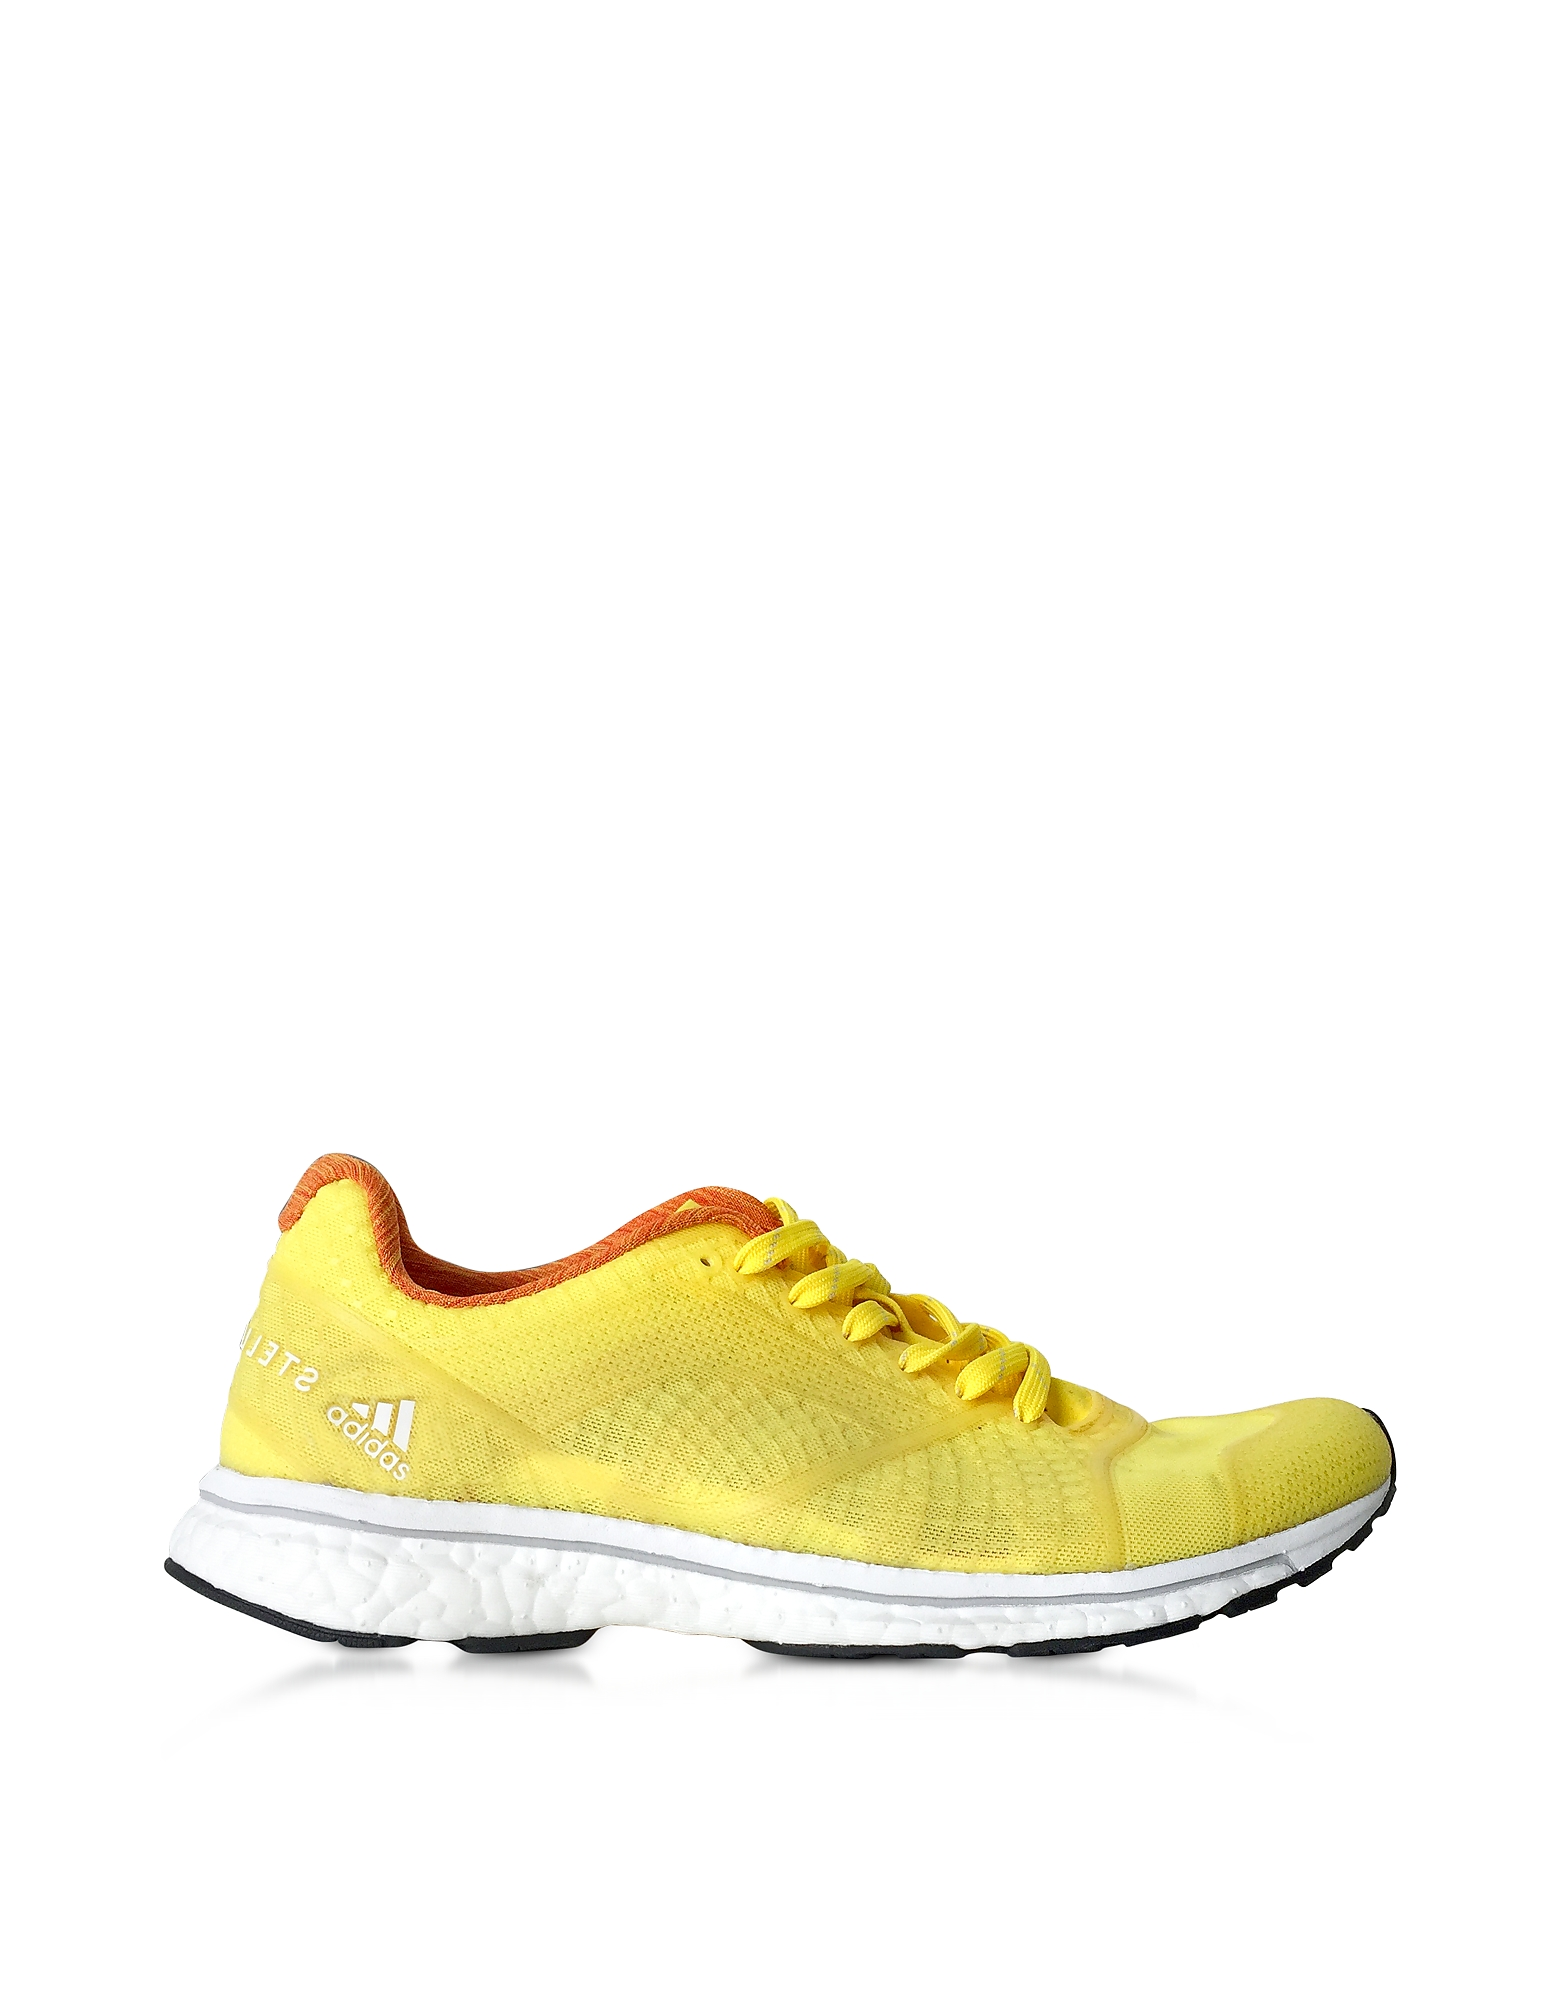 Adidas Stella McCartney Shoes, Yellow Adizero Trainers